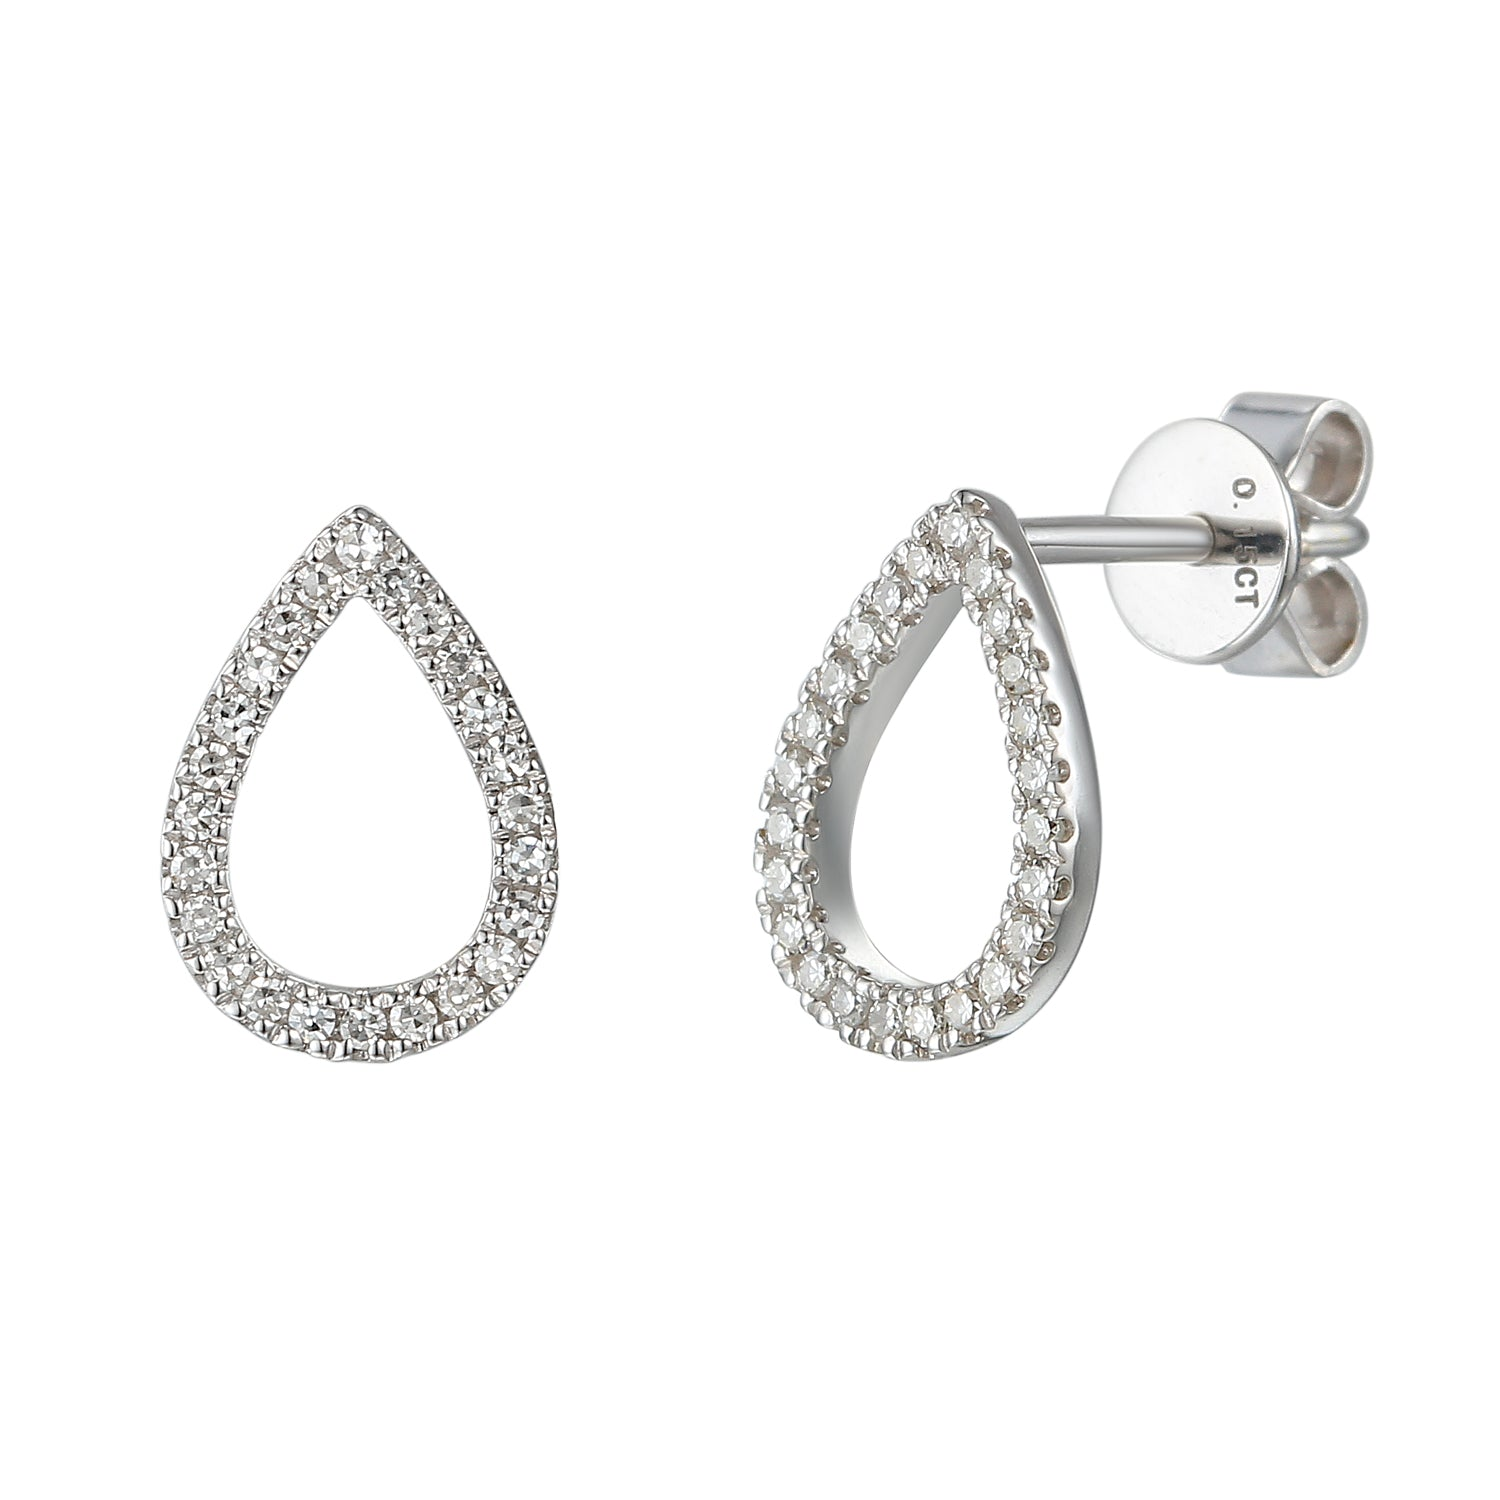 geometric shaped earrings shape open products buy pear stud set gold white diamond